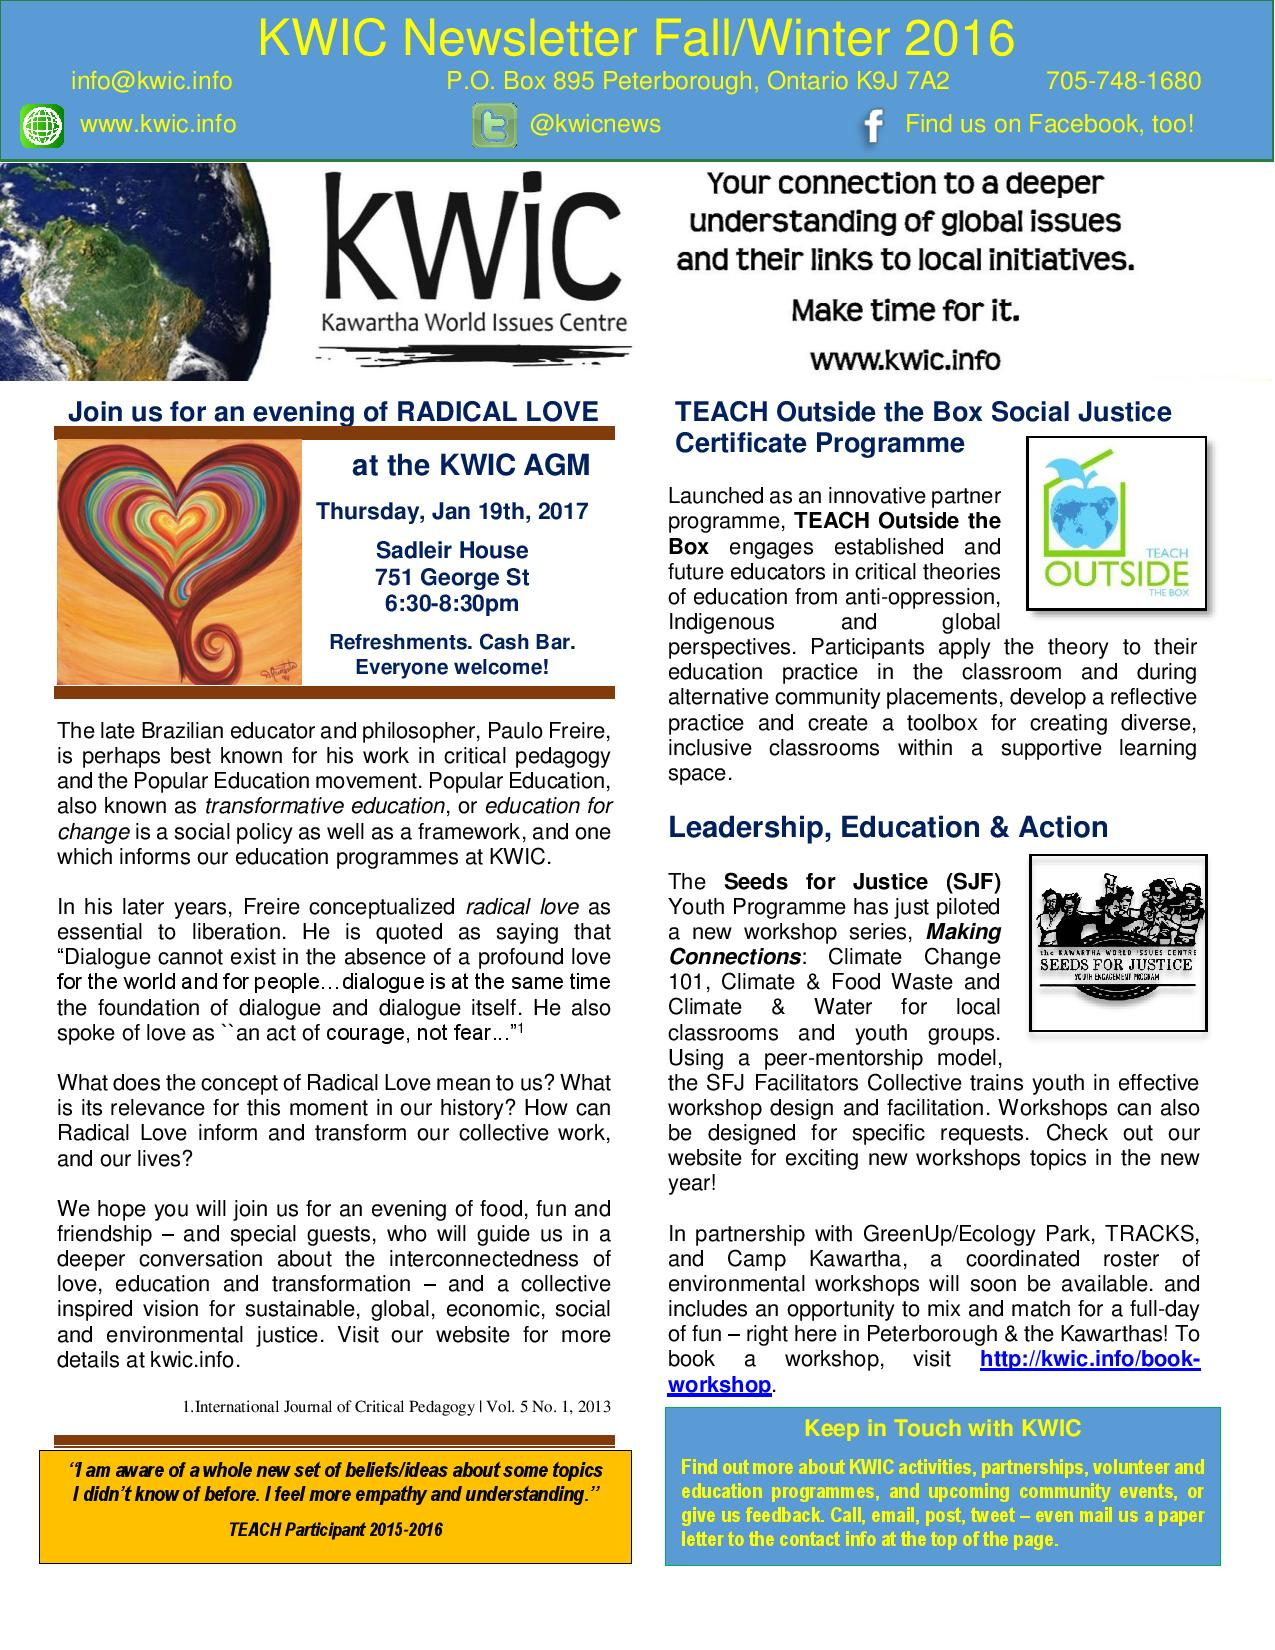 KWIC Winter 2016 Newsletter